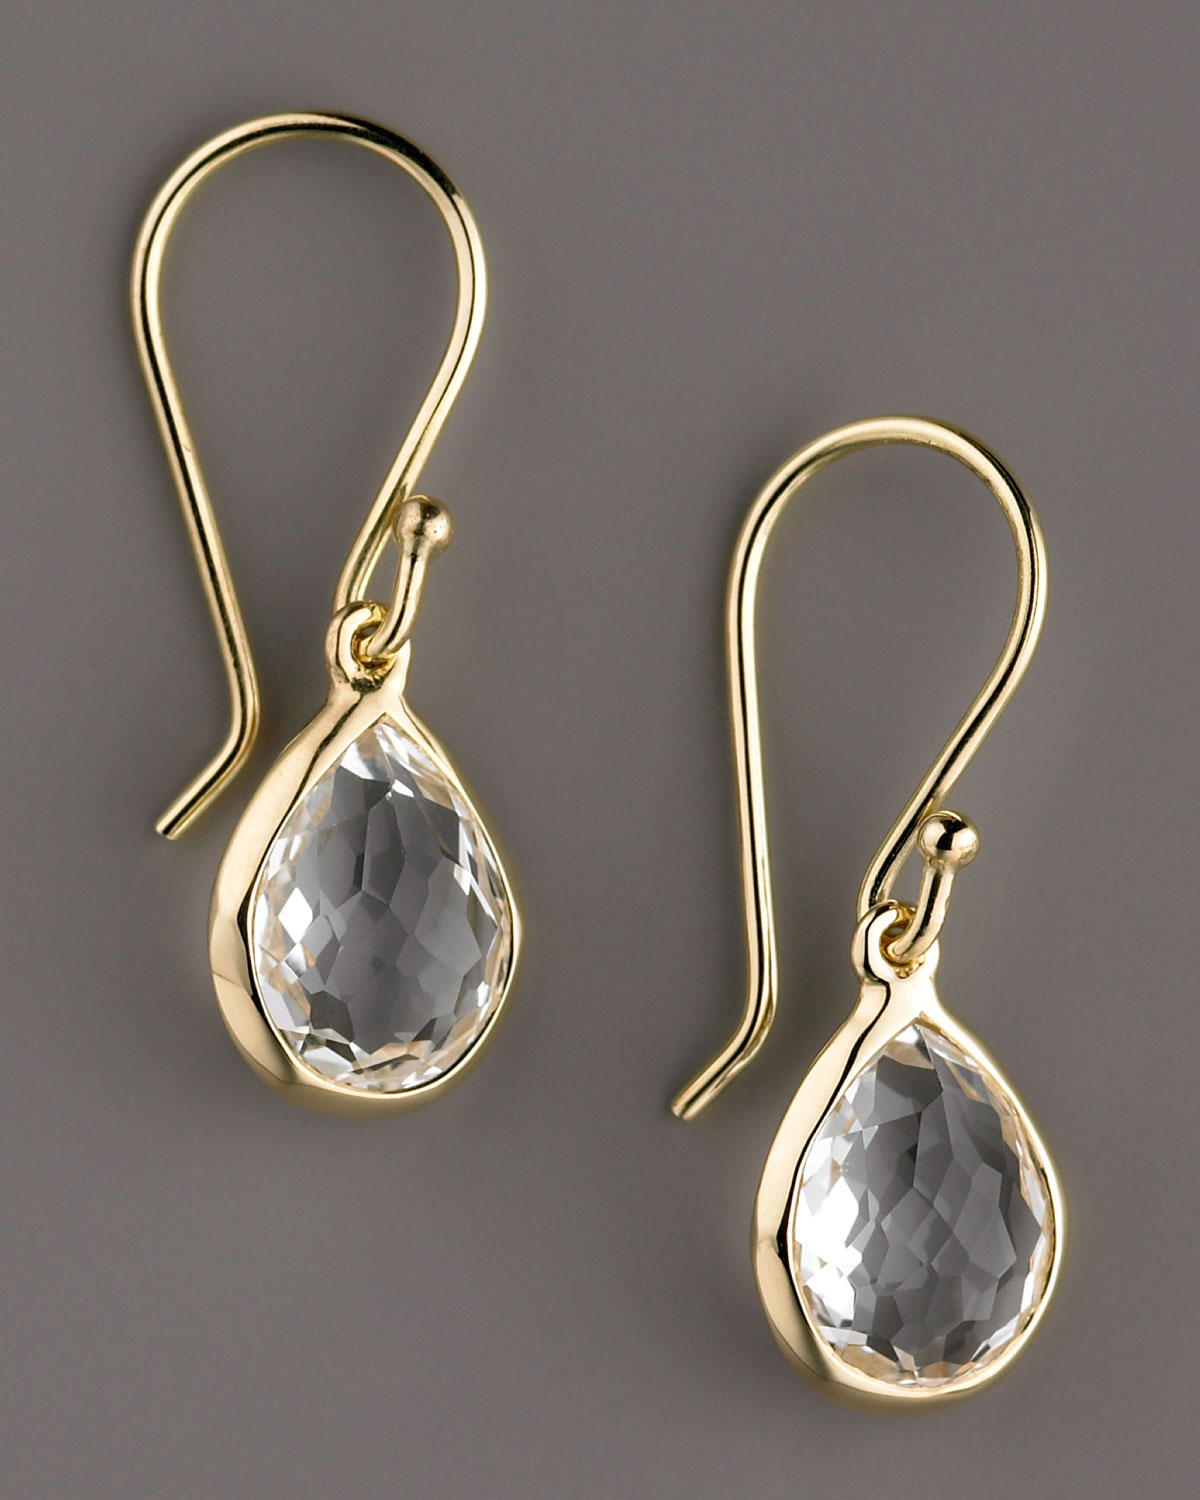 f0f65d59d Ippolita Rock Candy Teeny Teardrop Earrings, Clear Quartz in ...